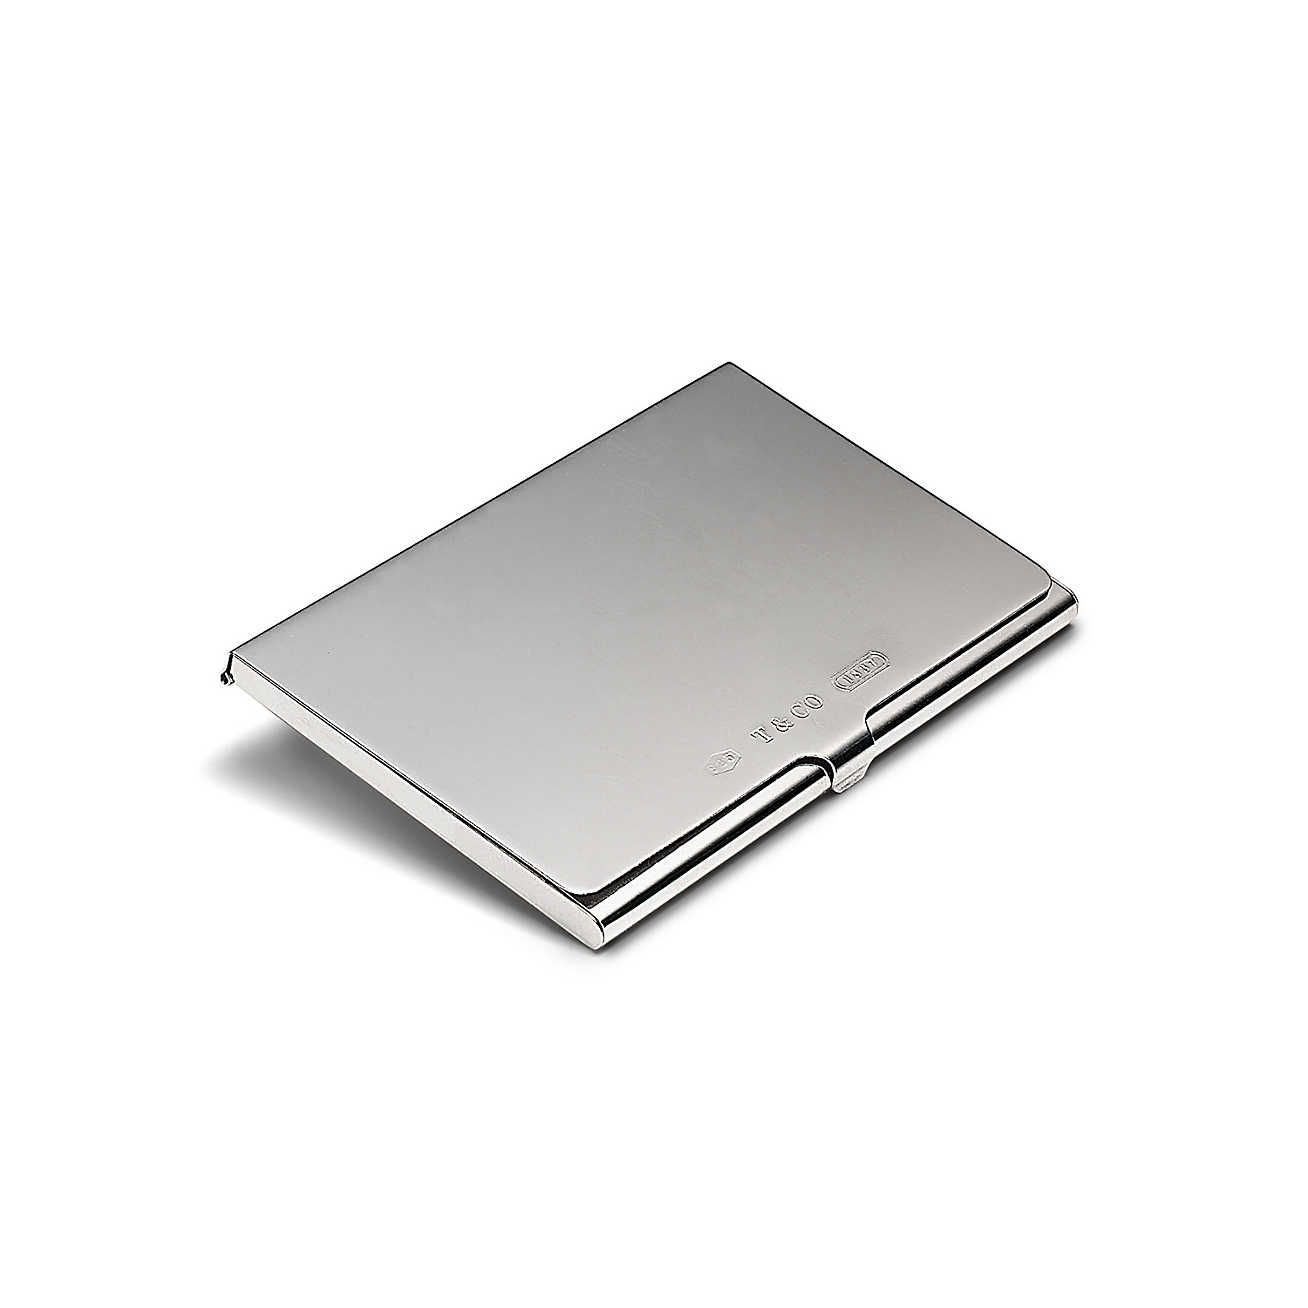 The Tiffany Sterling Silver Business Card Case That Makes A Bold Statement At Co And Add Engraving For Personalized Touch